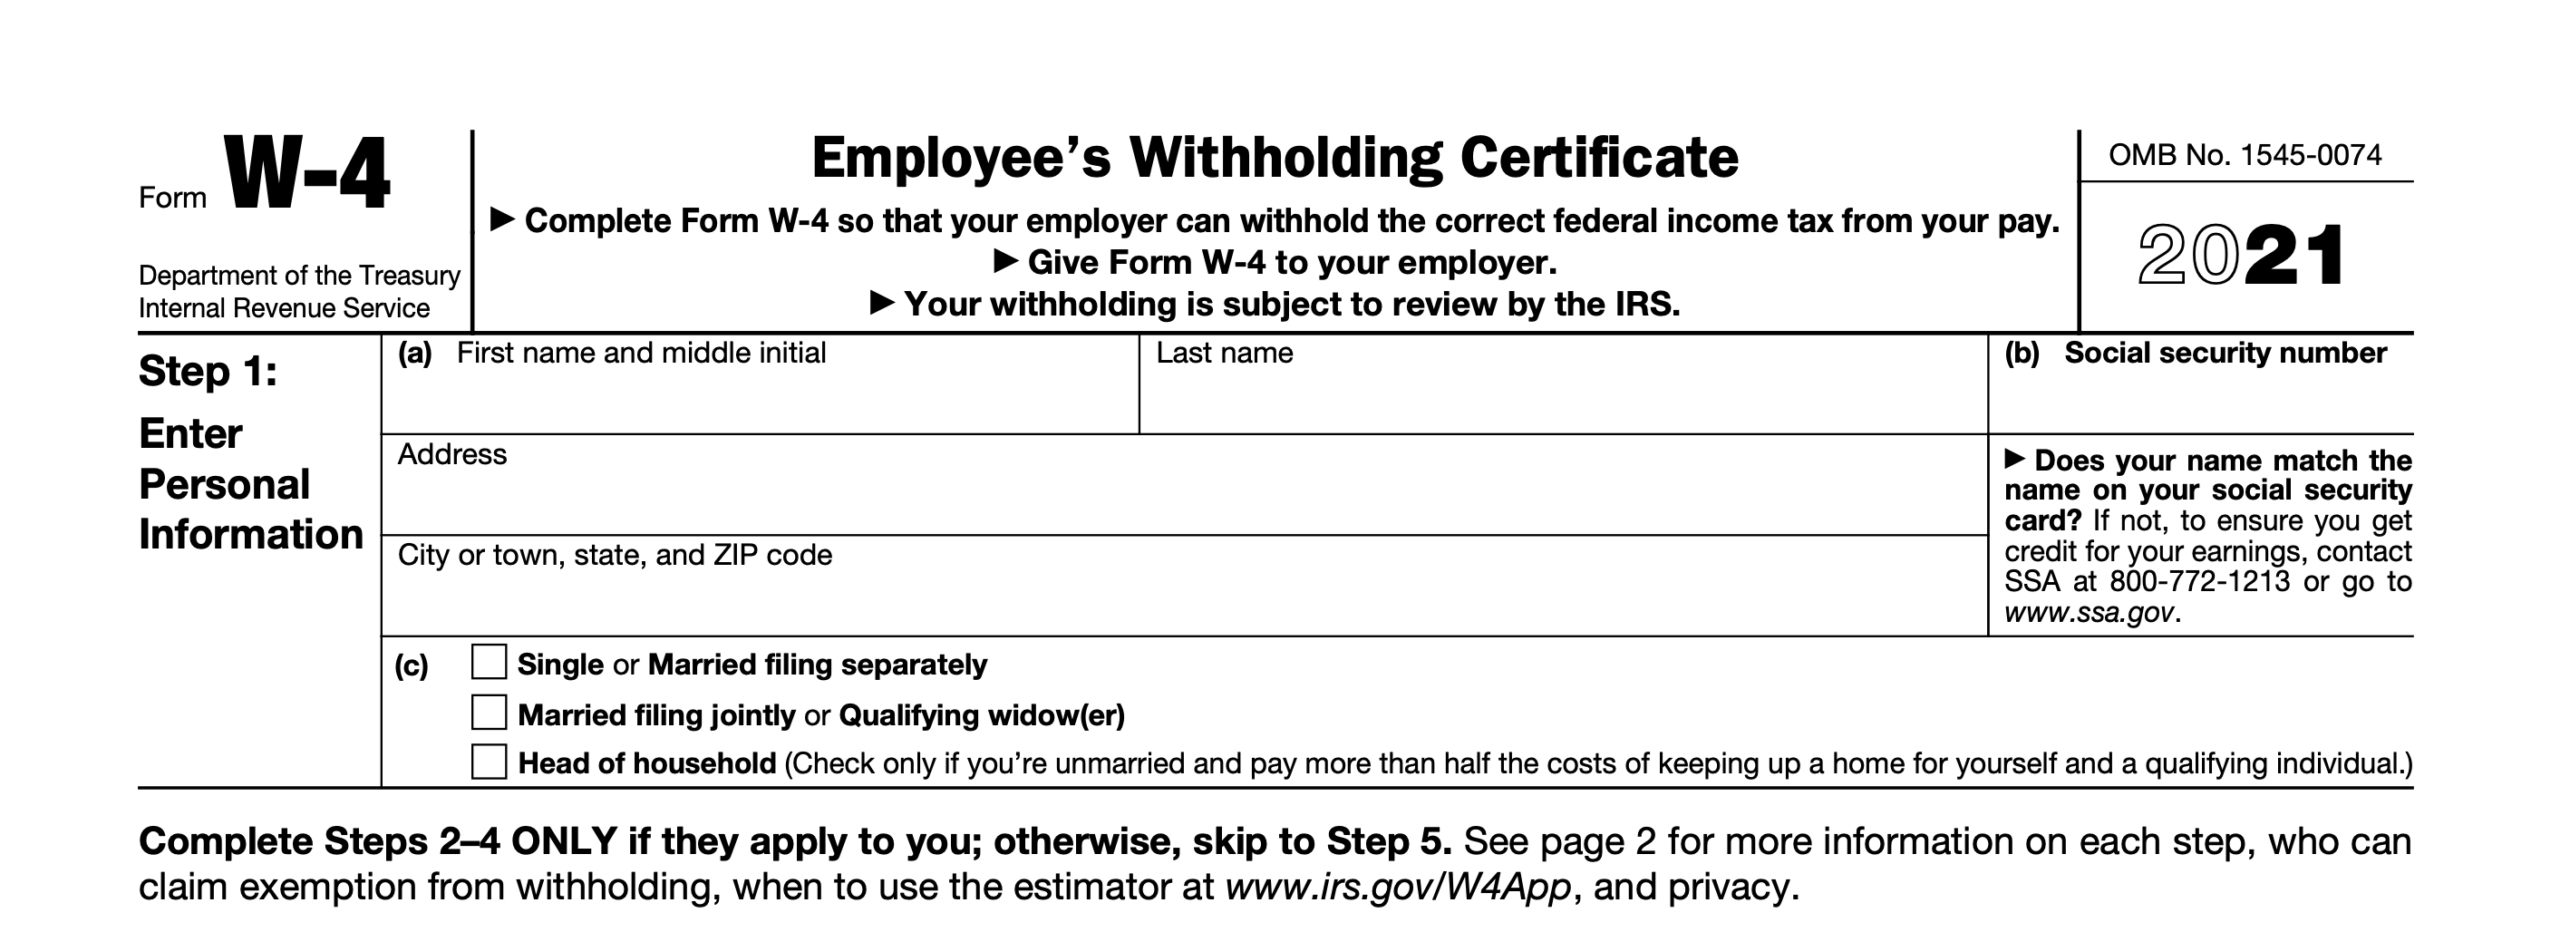 2021 Irs Form W-4: Simple Instructions + Pdf Download